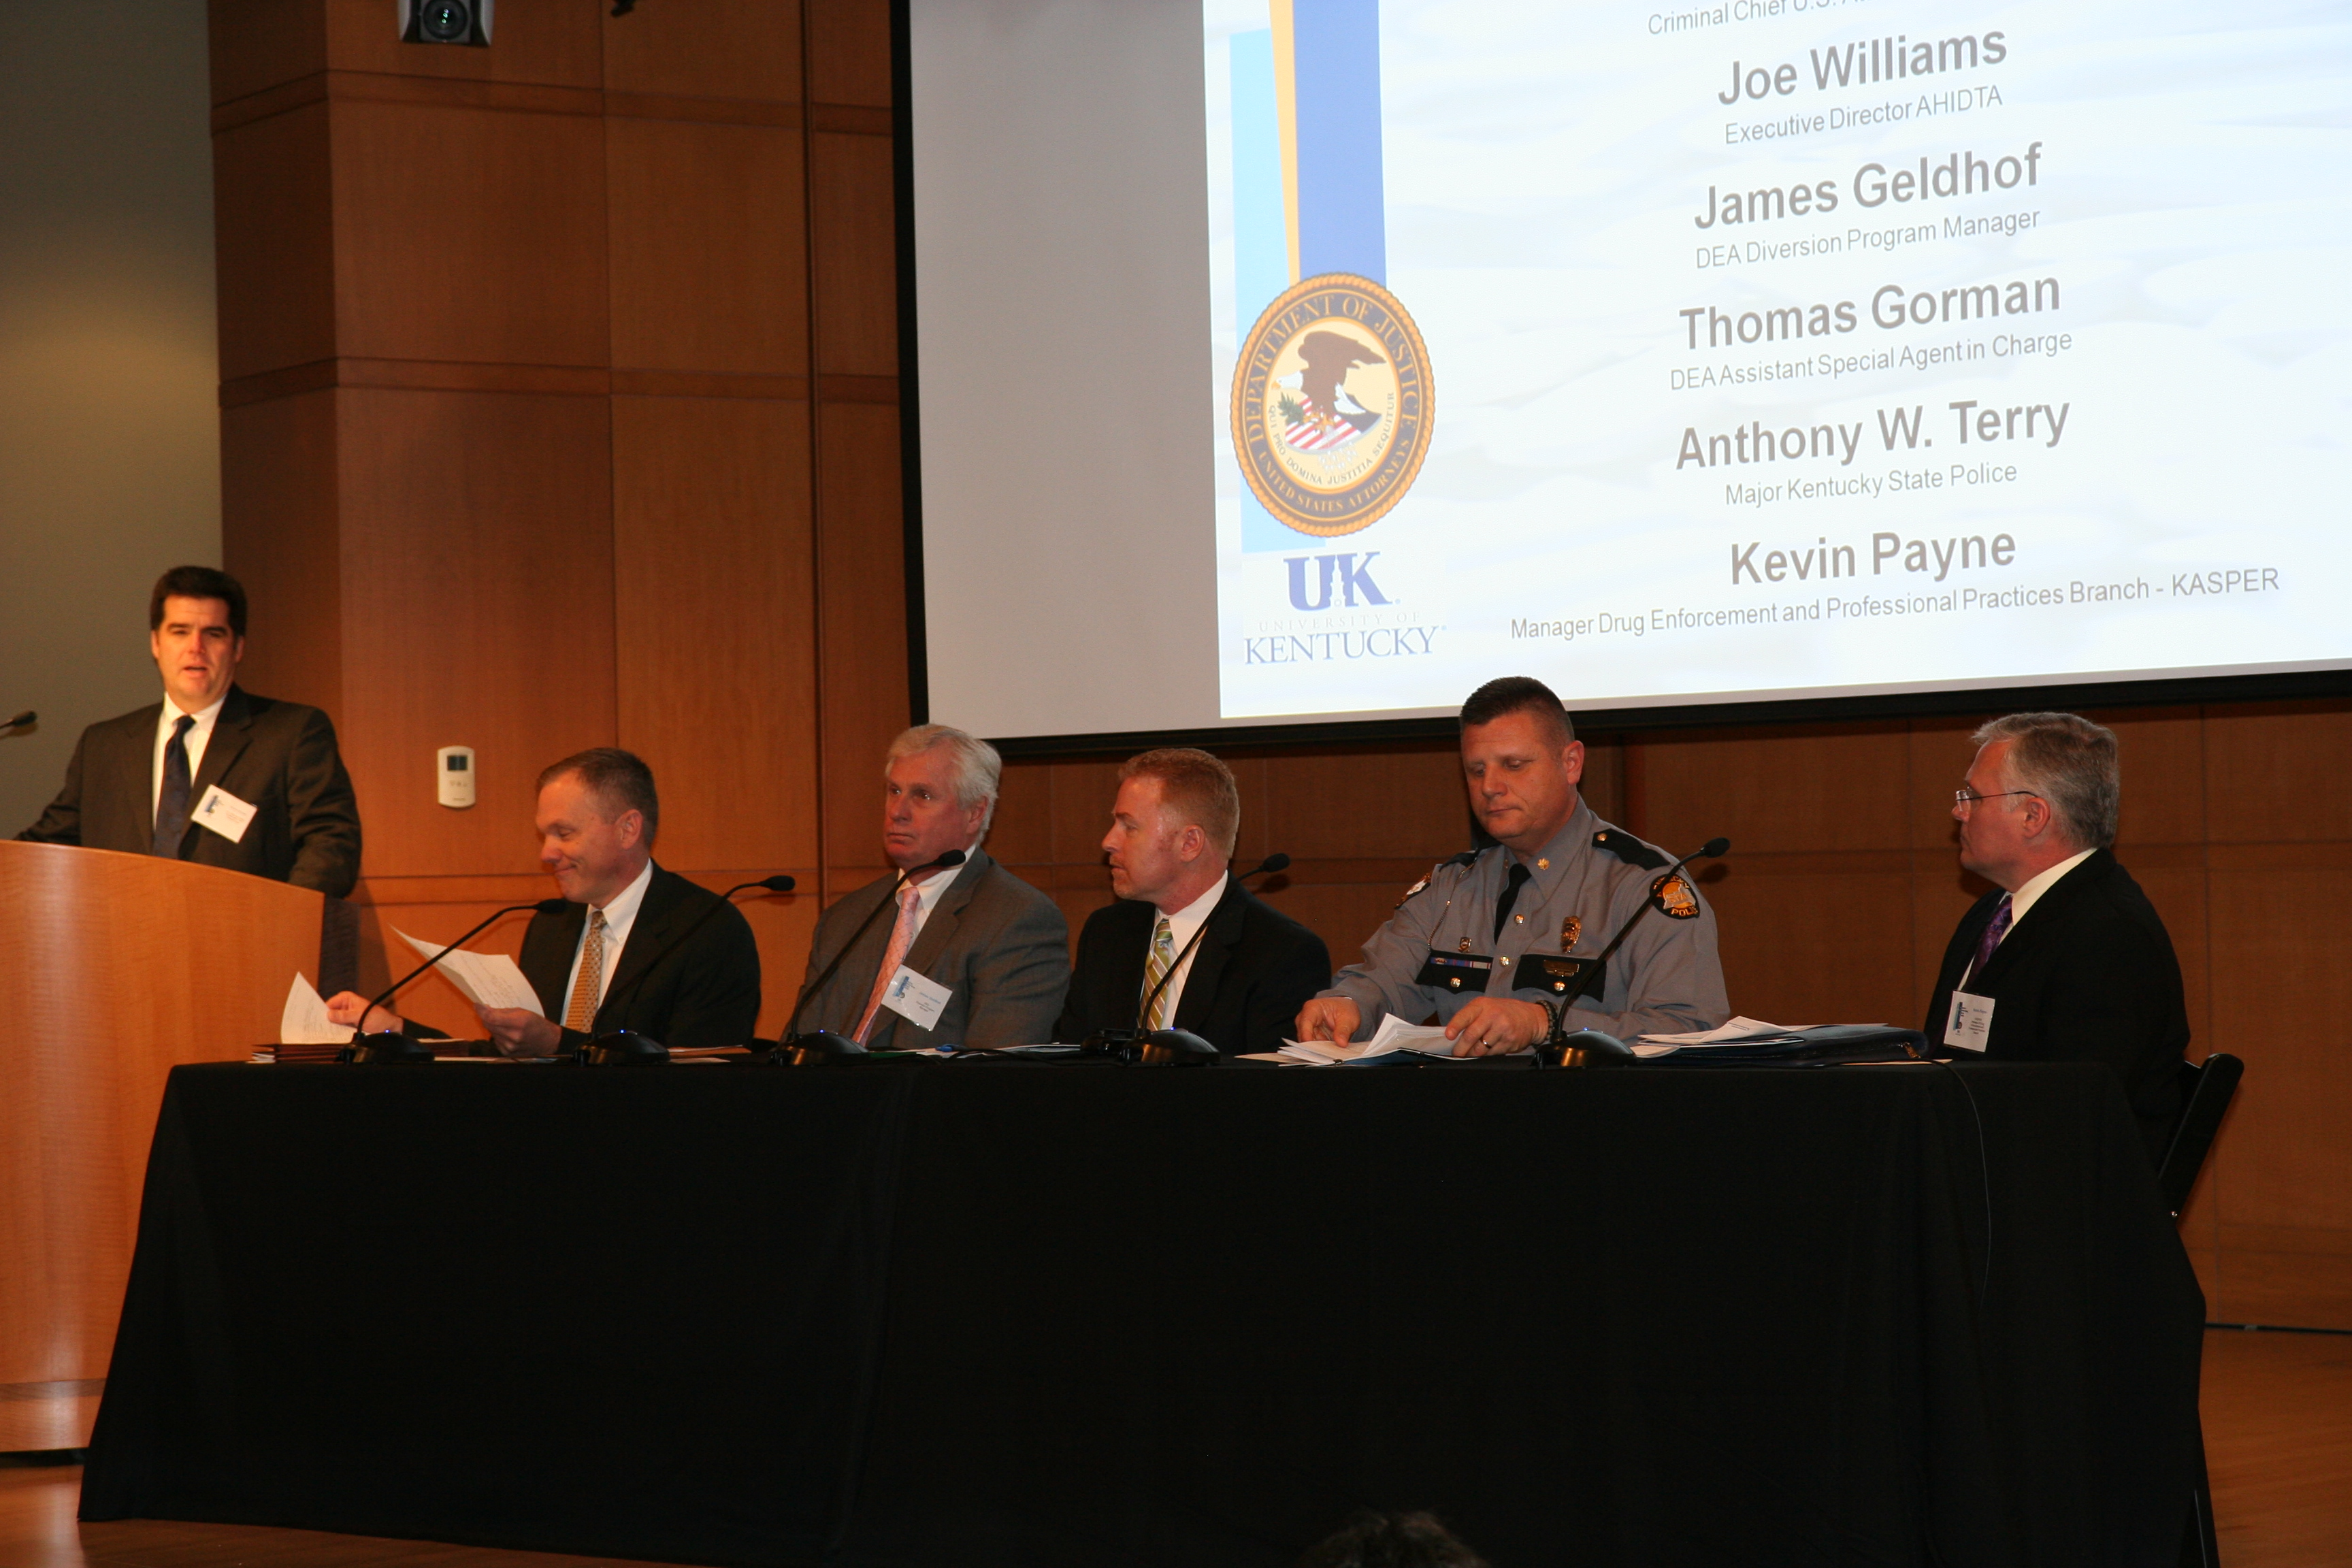 Panel discussions and presentations focused on prescription drug abuse and its impact on Kentucky communities, schools and its institutions